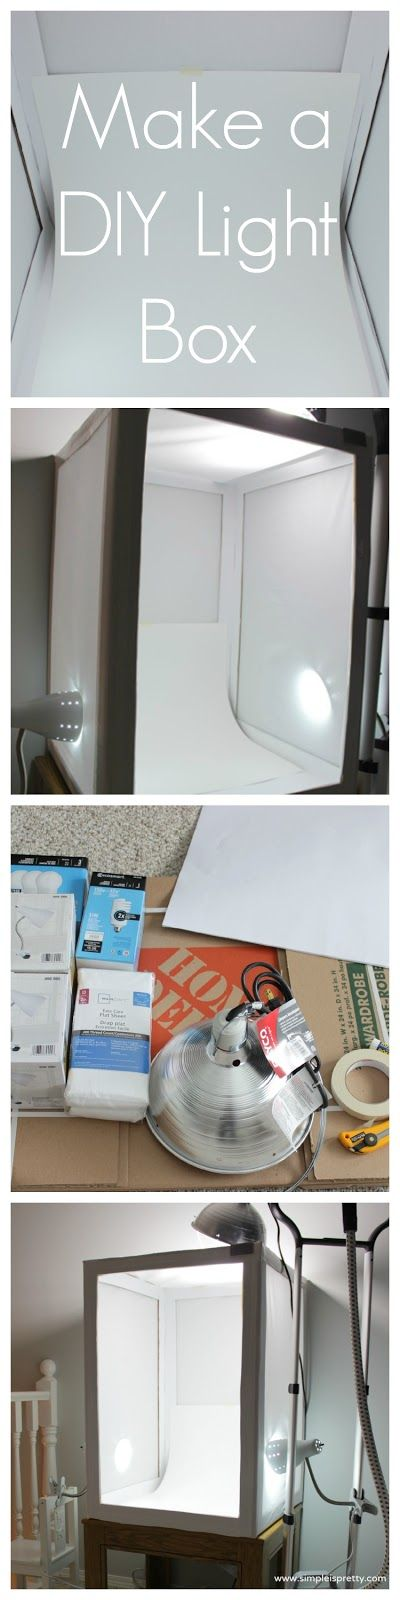 Make a DIY Light Box or Light Tent - www.simpleispretty.com